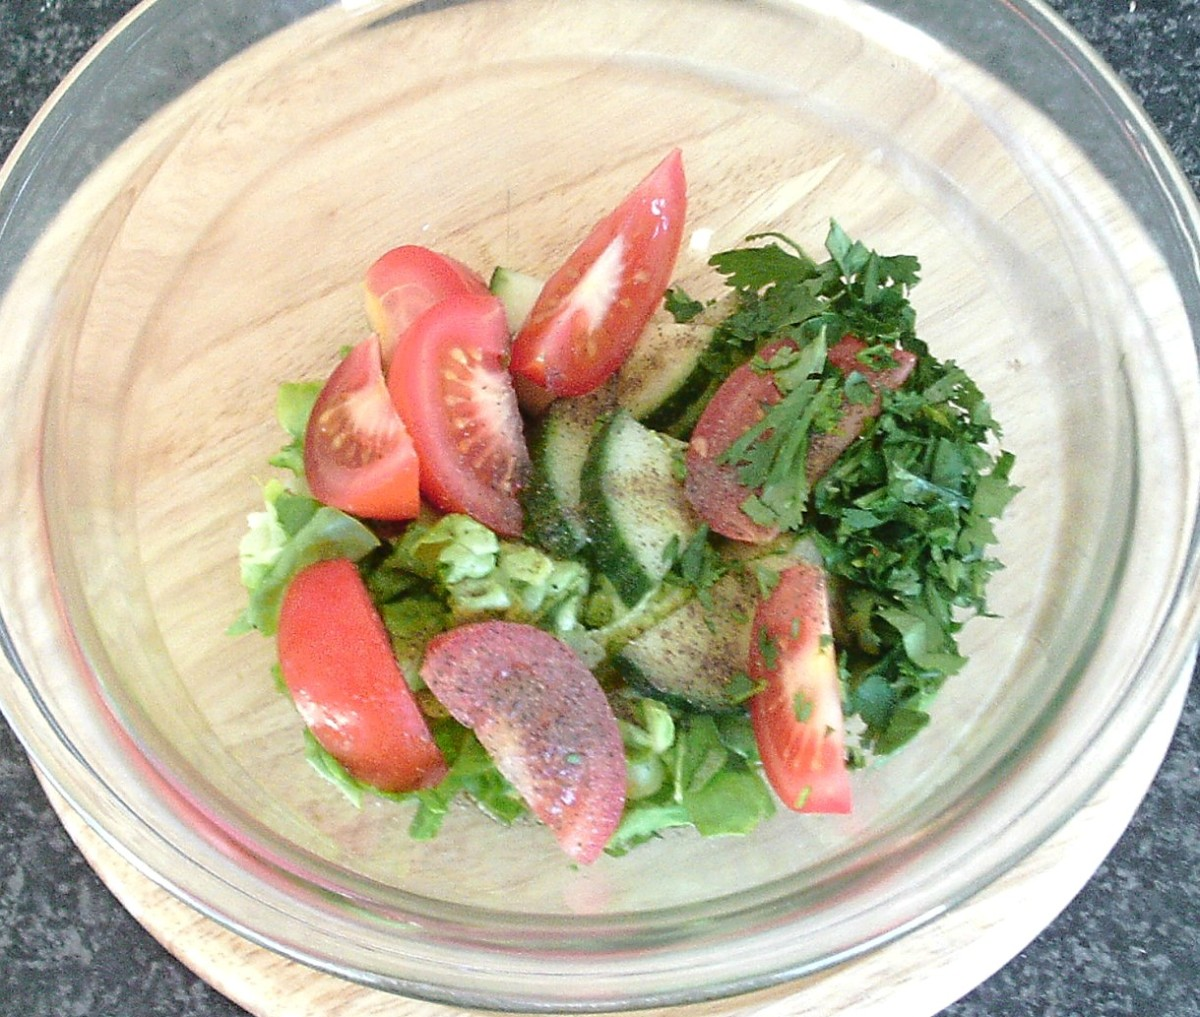 Salad ingredients are added to dressing